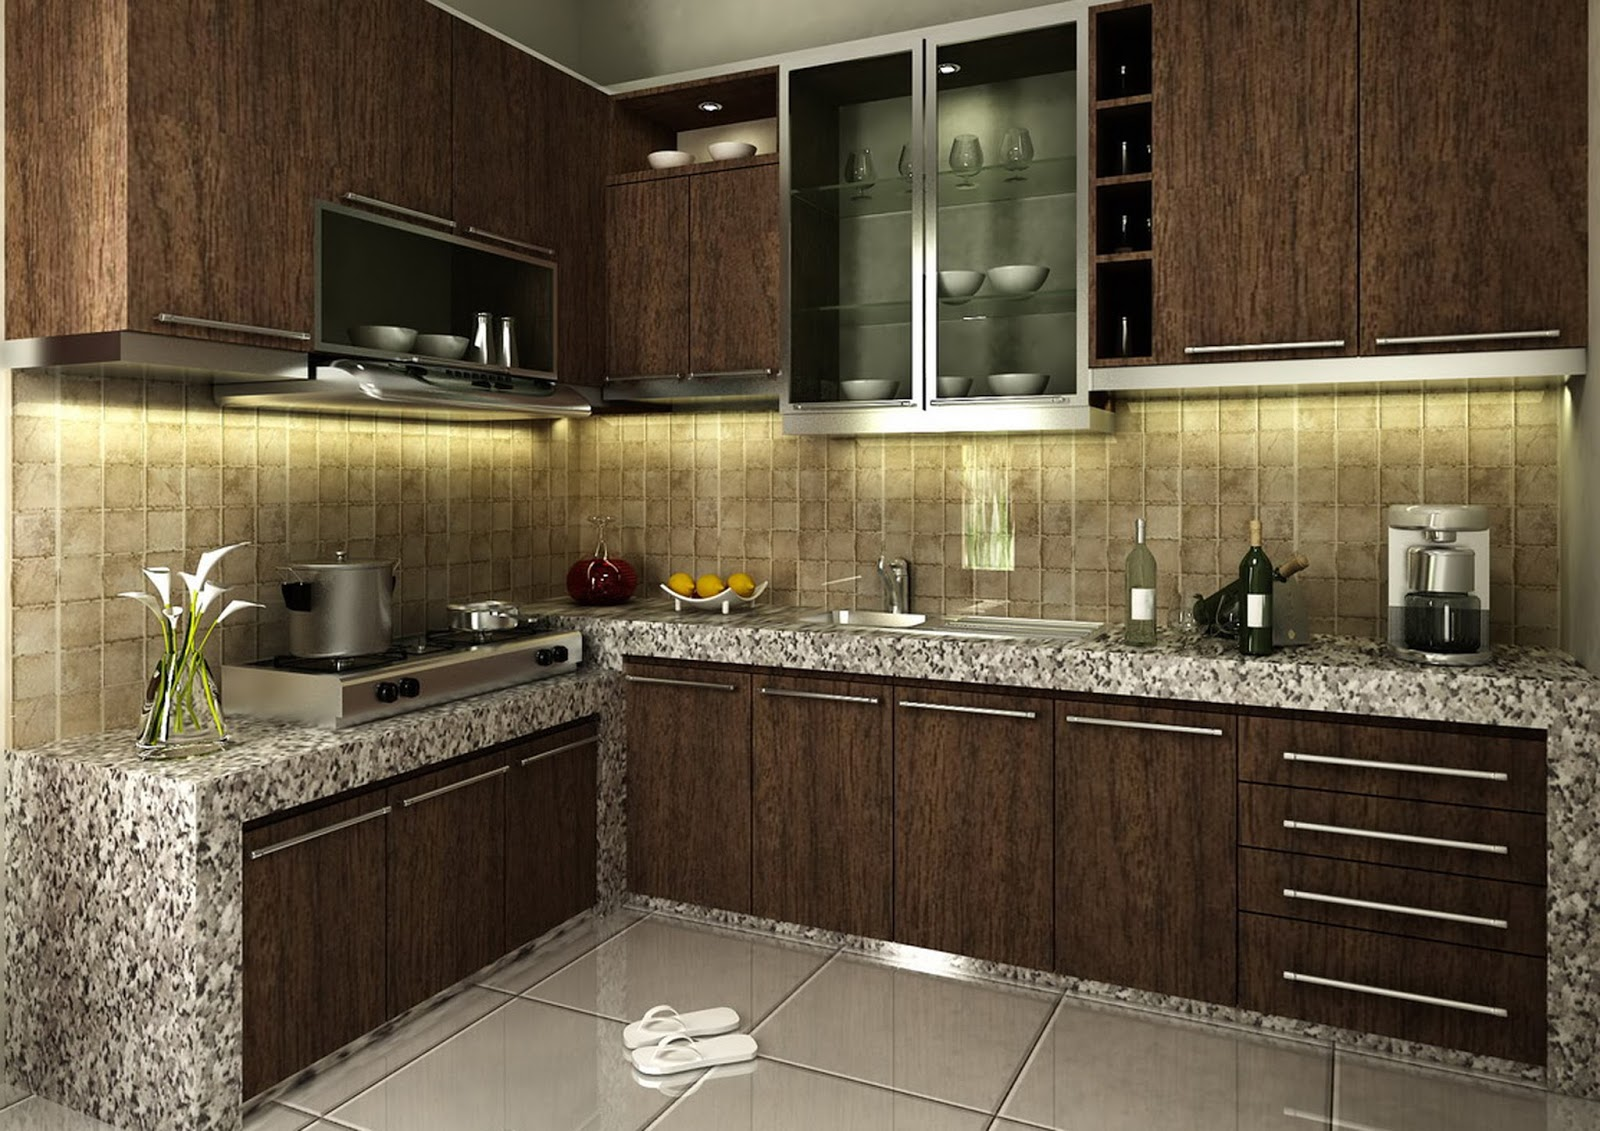 Design Kitchen Set Minimalis Modern Kitchen Set Minimalis Modern Gardening Tips